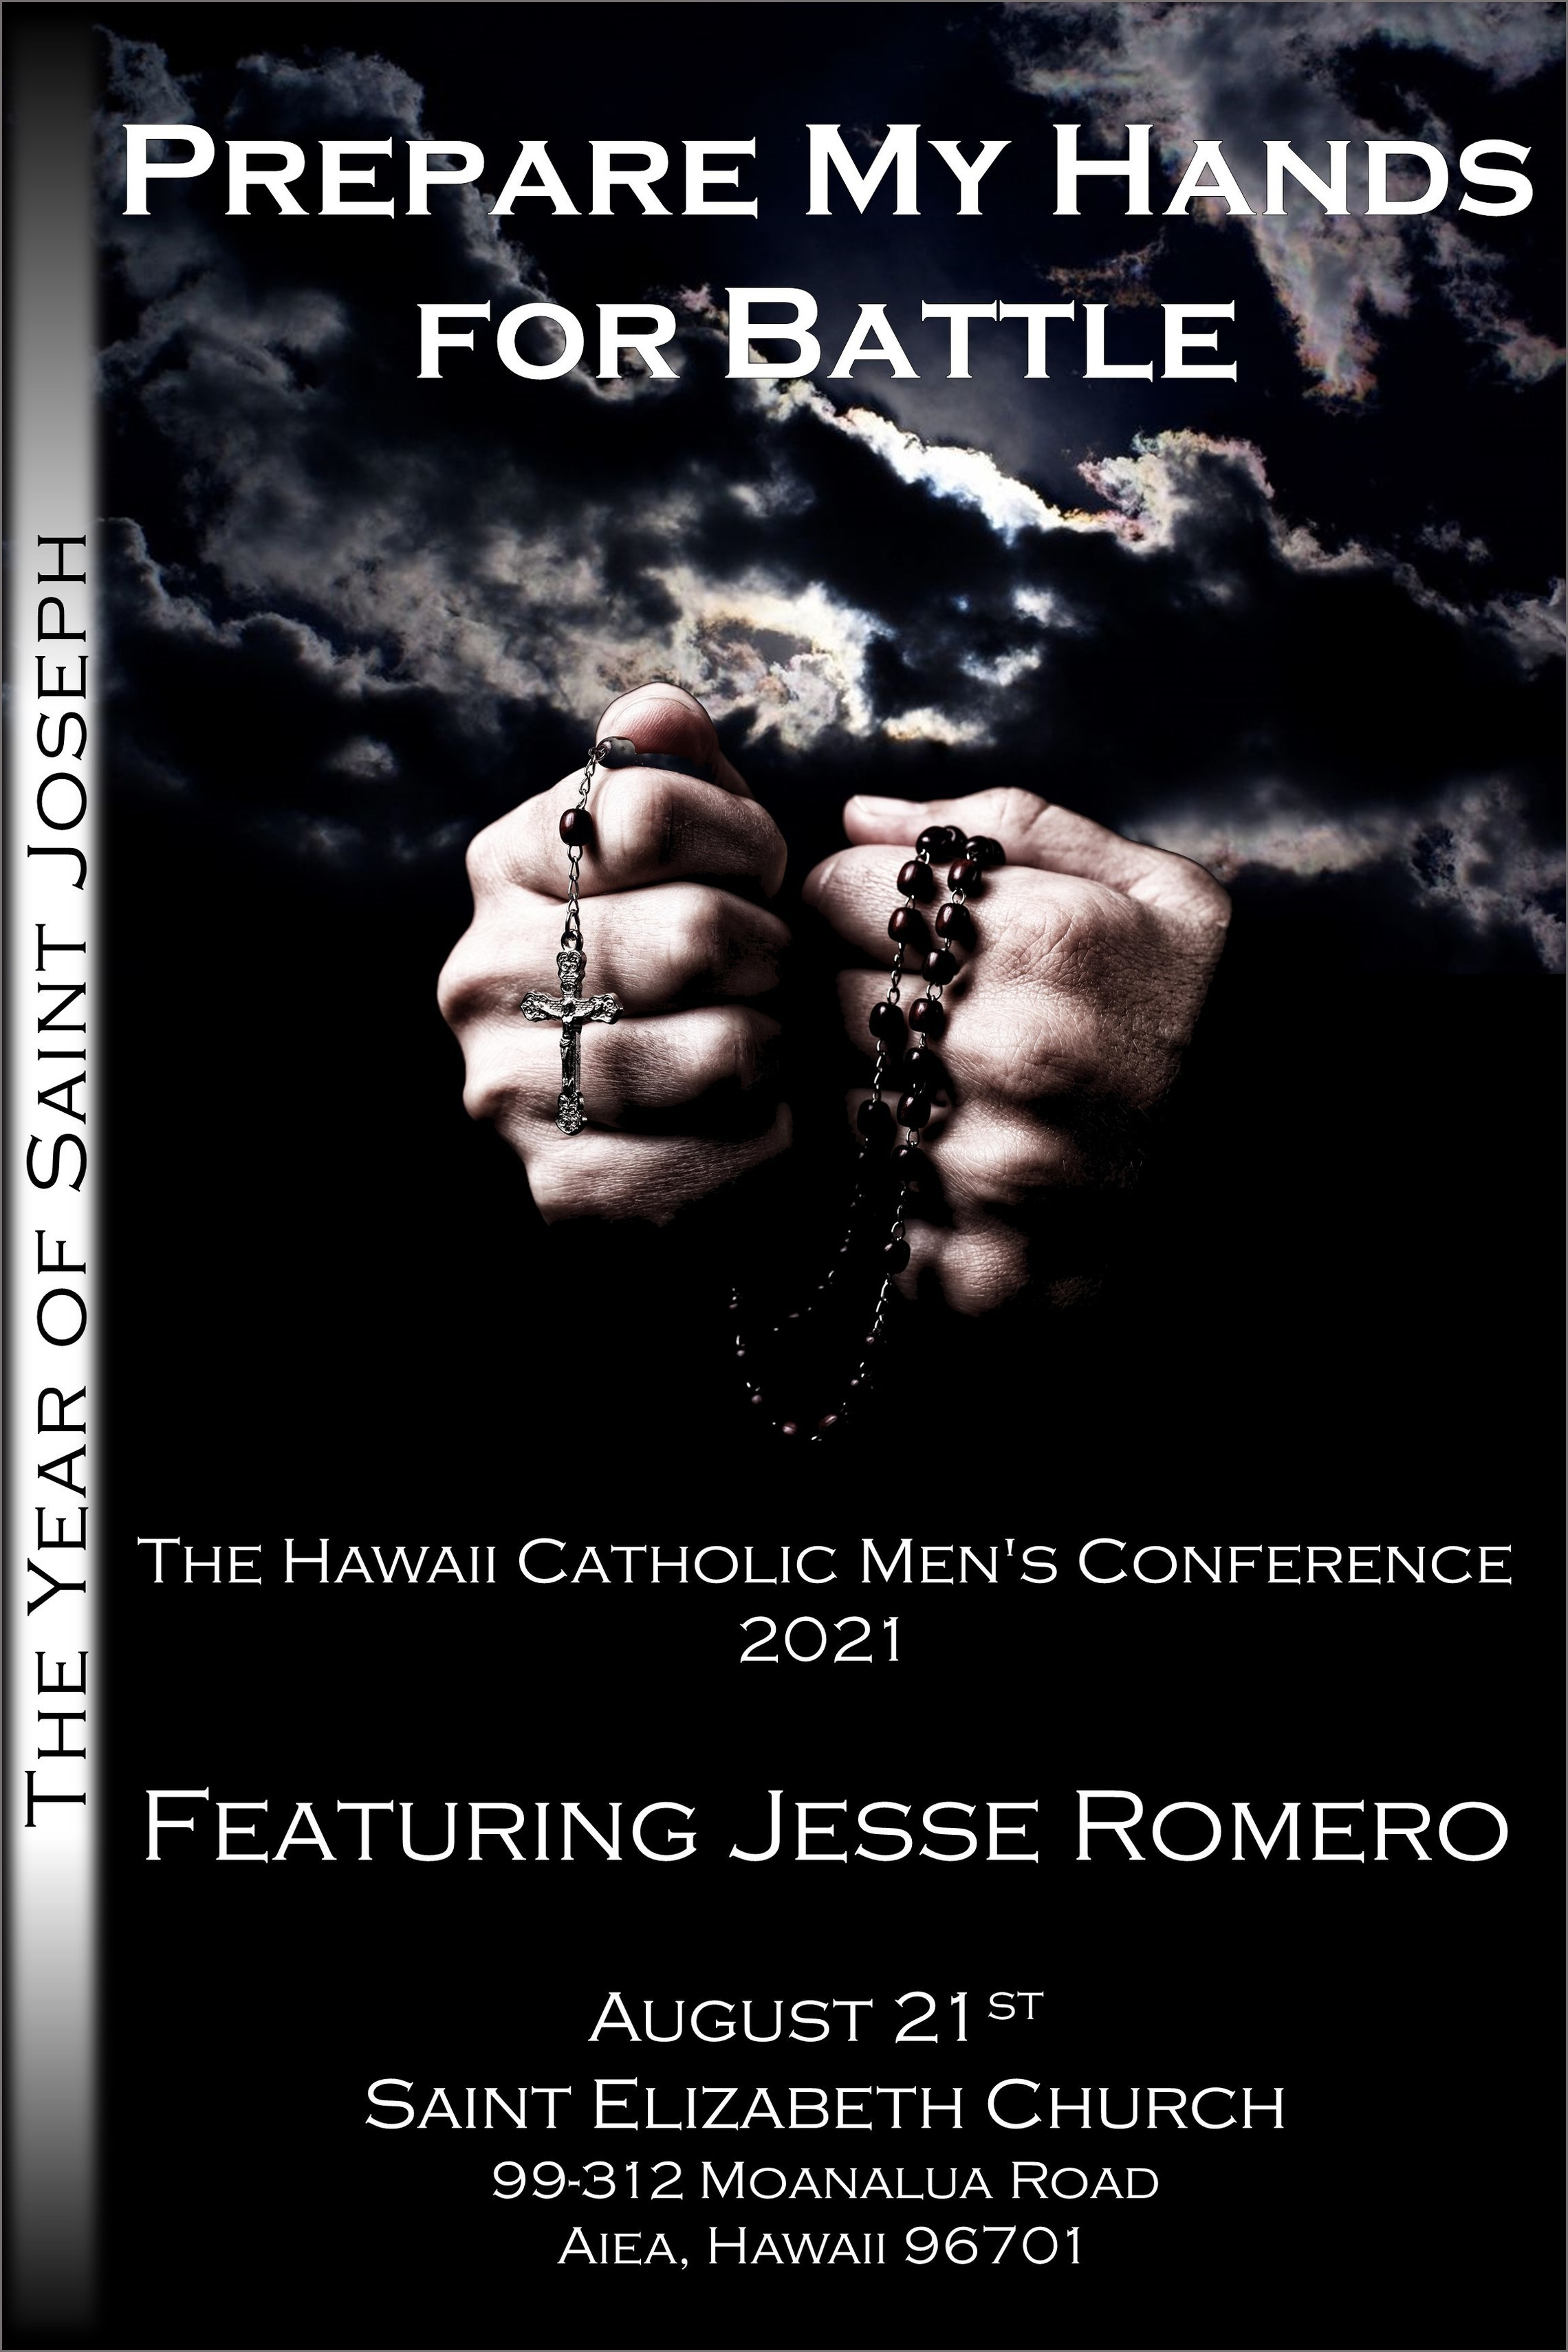 The Hawaii Catholic Men's Conference 2021